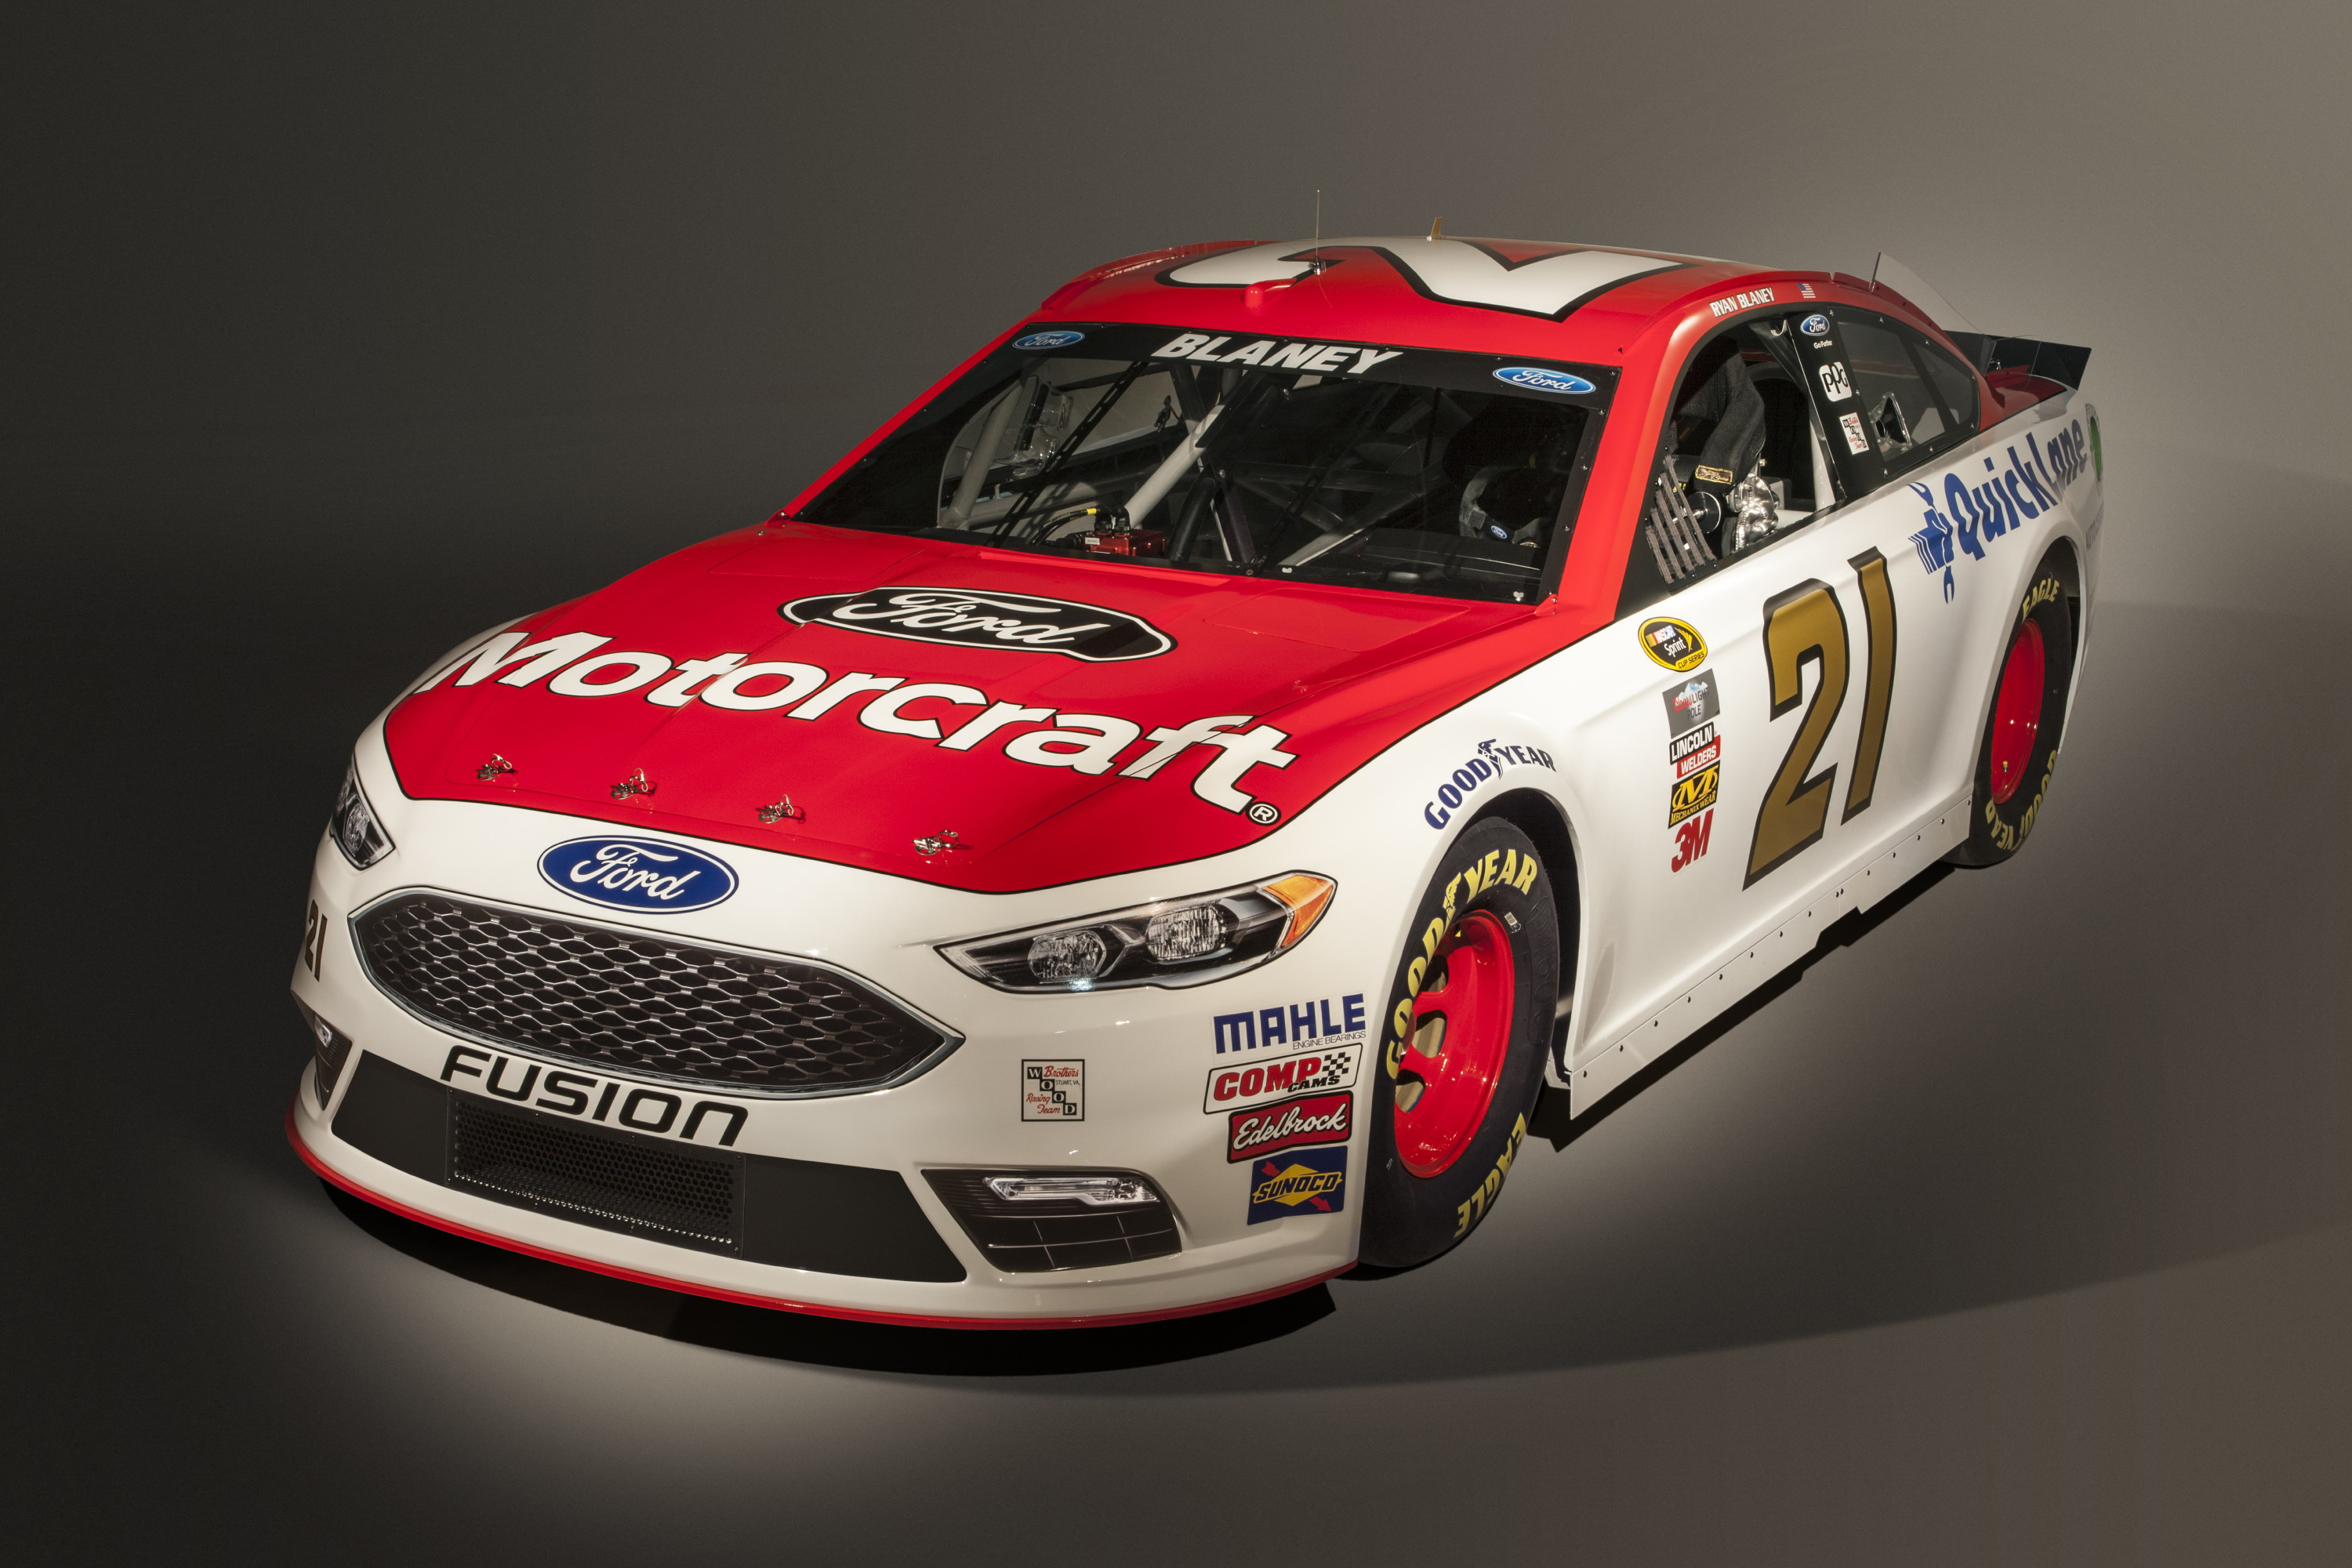 Vehicle Manufacturers In Nascar 2016 Ford Fusion Nascar Top Speed